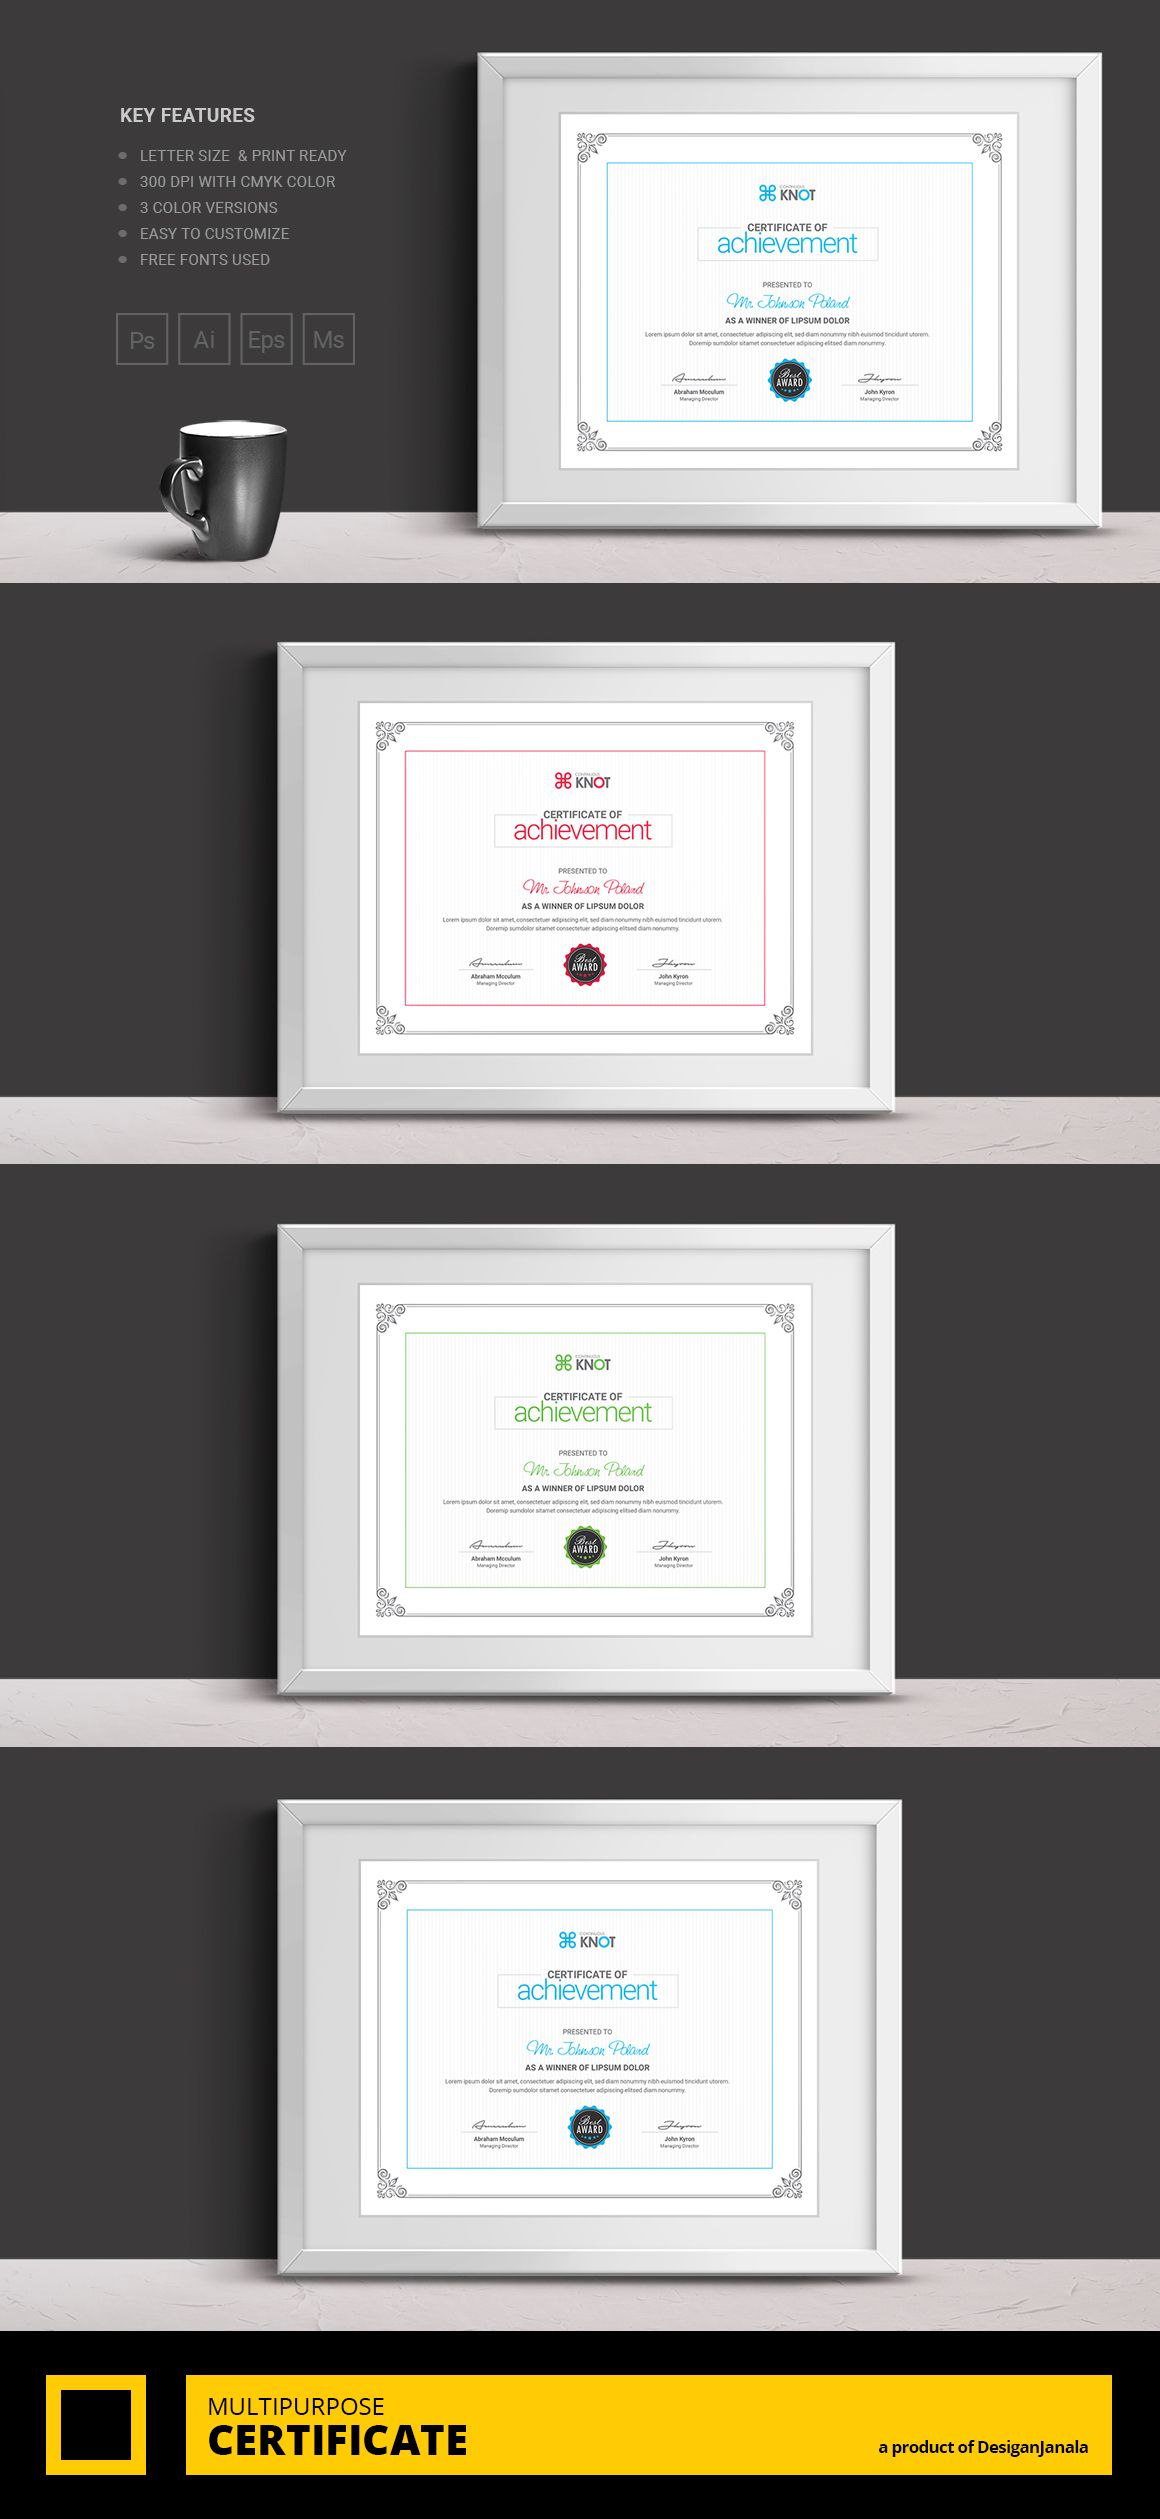 Corporate and modern certificate template this multipurpose this multipurpose certificate template is suitable for any certificate of achievement award giving certificate certificate of excellence certificate of xflitez Image collections